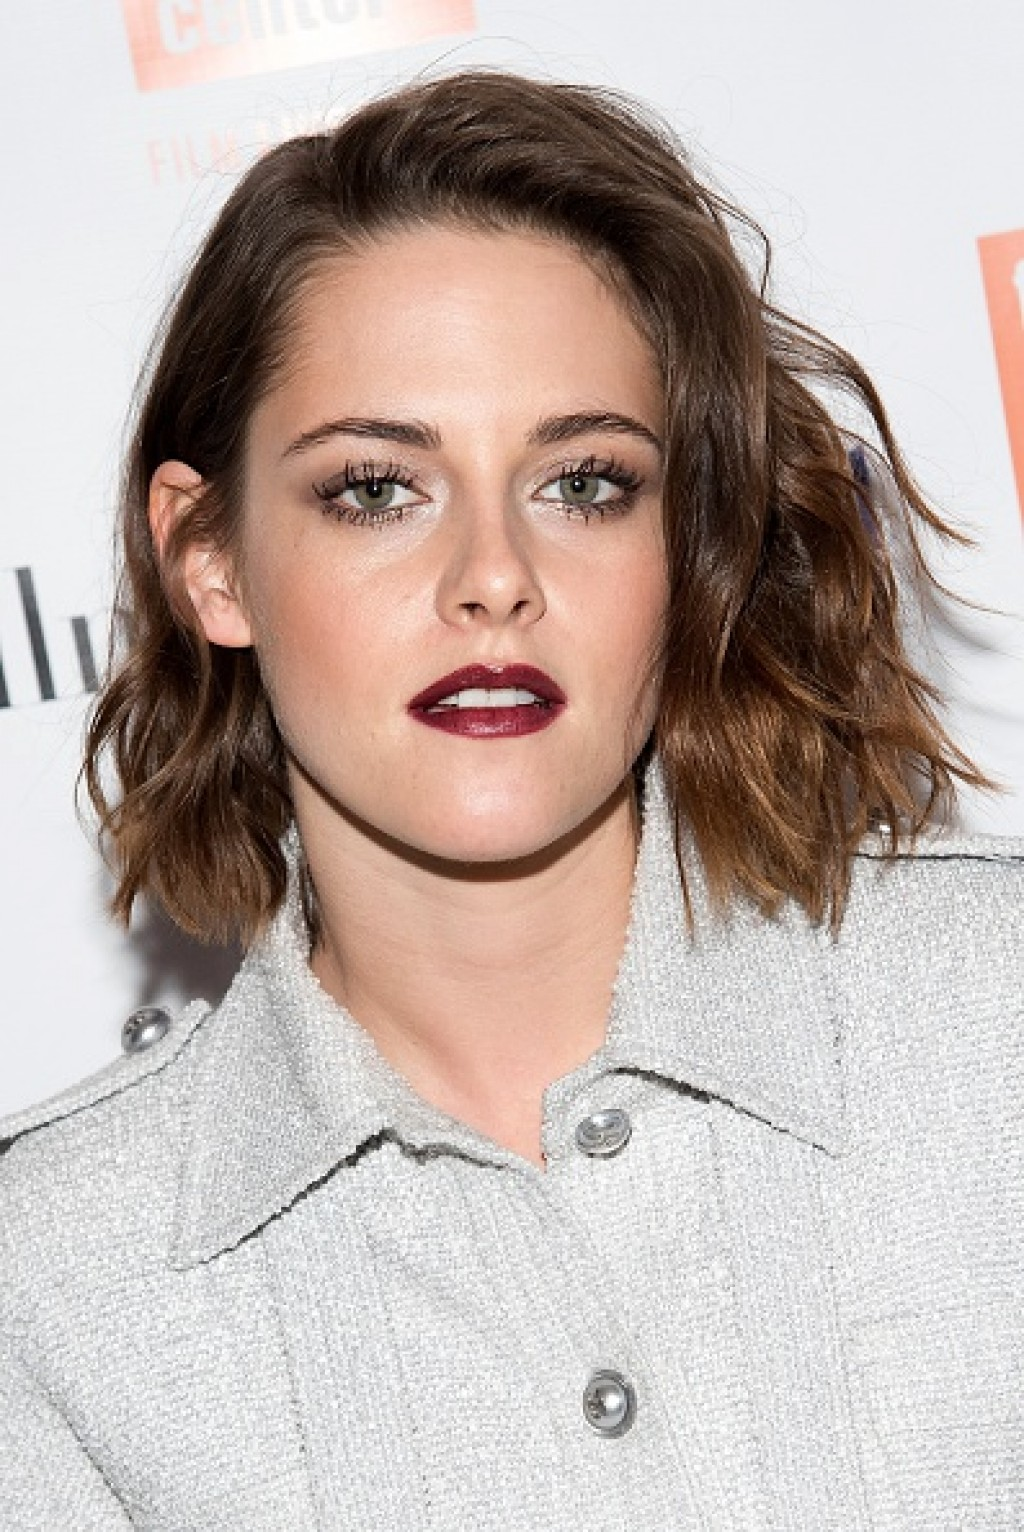 Kristen-Stewart-The-Tonight-Show-Makeup-1024x1532